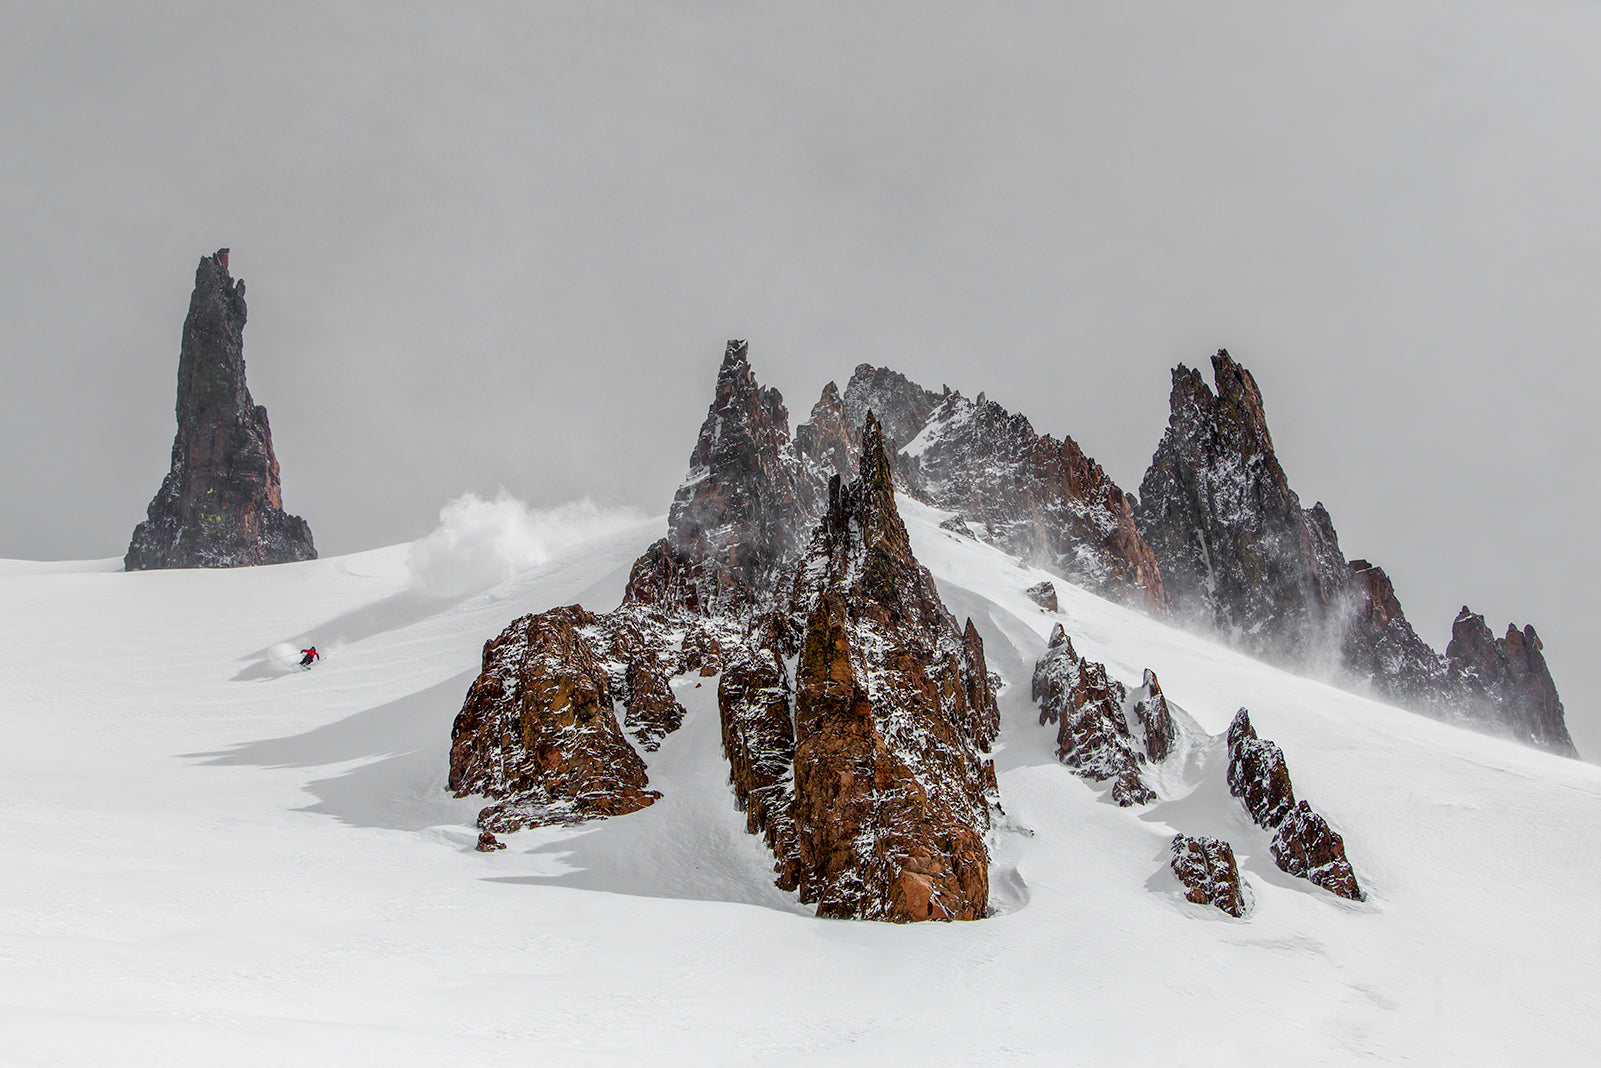 BACKCOUNTRY SKIING SPIRES